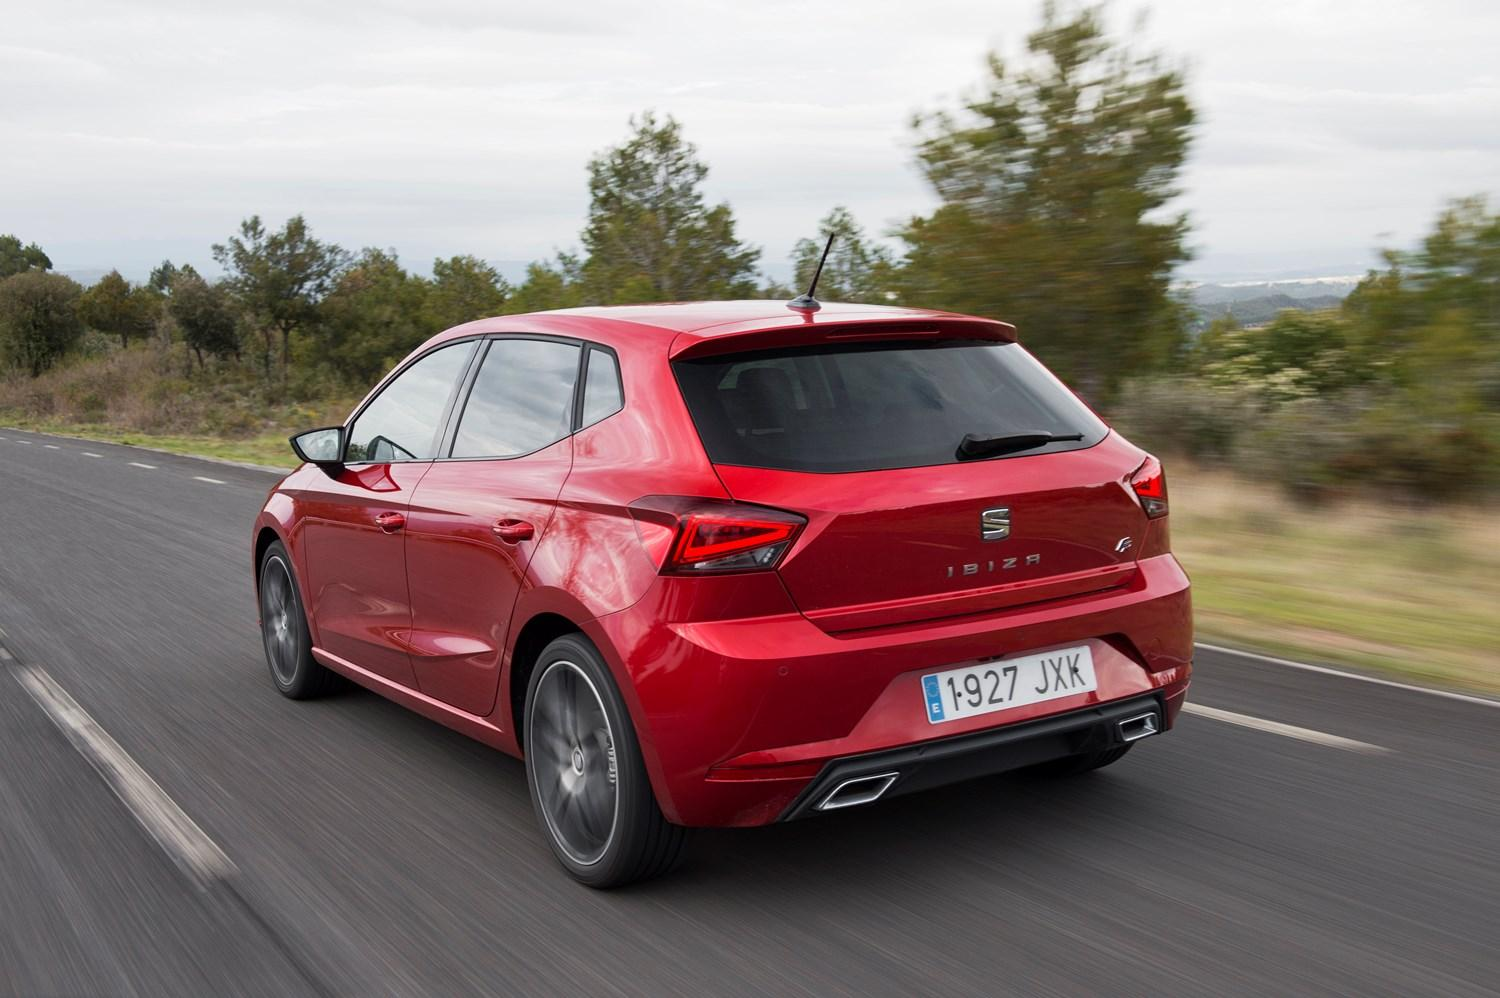 Red SEAT Ibiza on road from behind